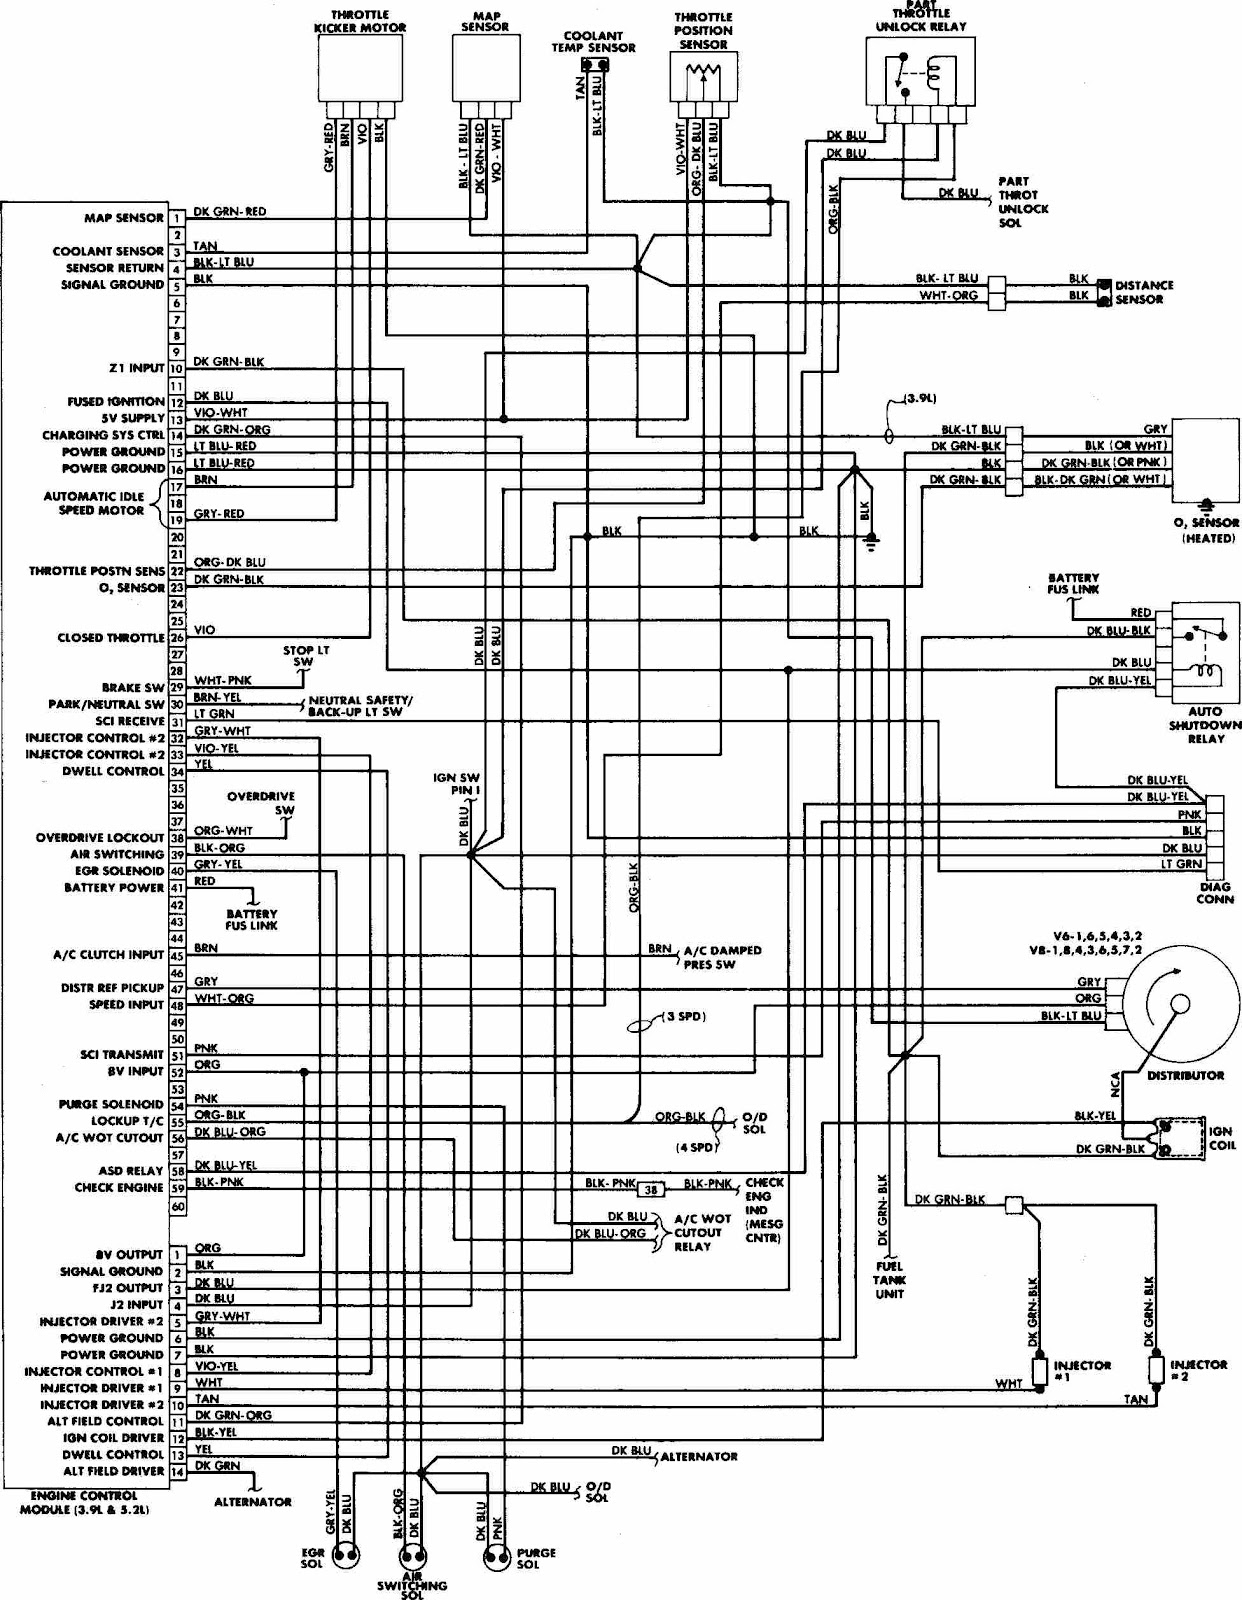 1994 Gmc Sierra Radio Wiring Diagram Opinions About 1991 Dodge W100 1988 Engine Control All Diagrams 1500